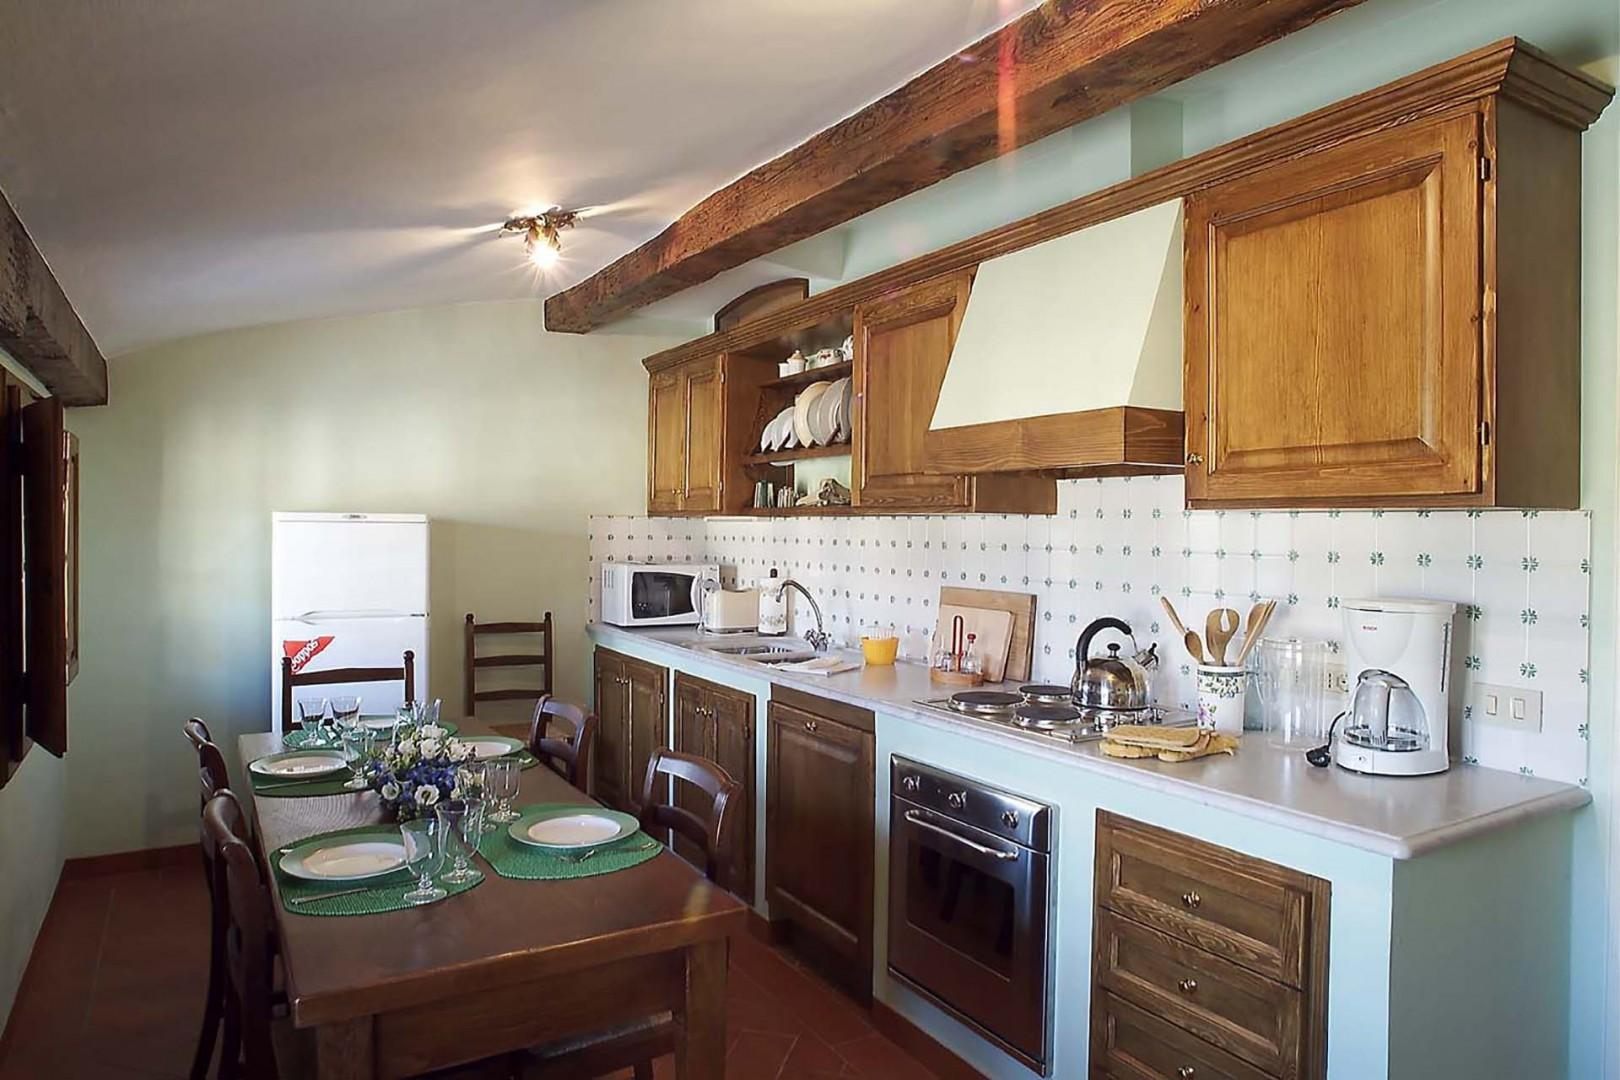 Tosca's kitchen is complete. There is room to eat in here as well as in the dining area.